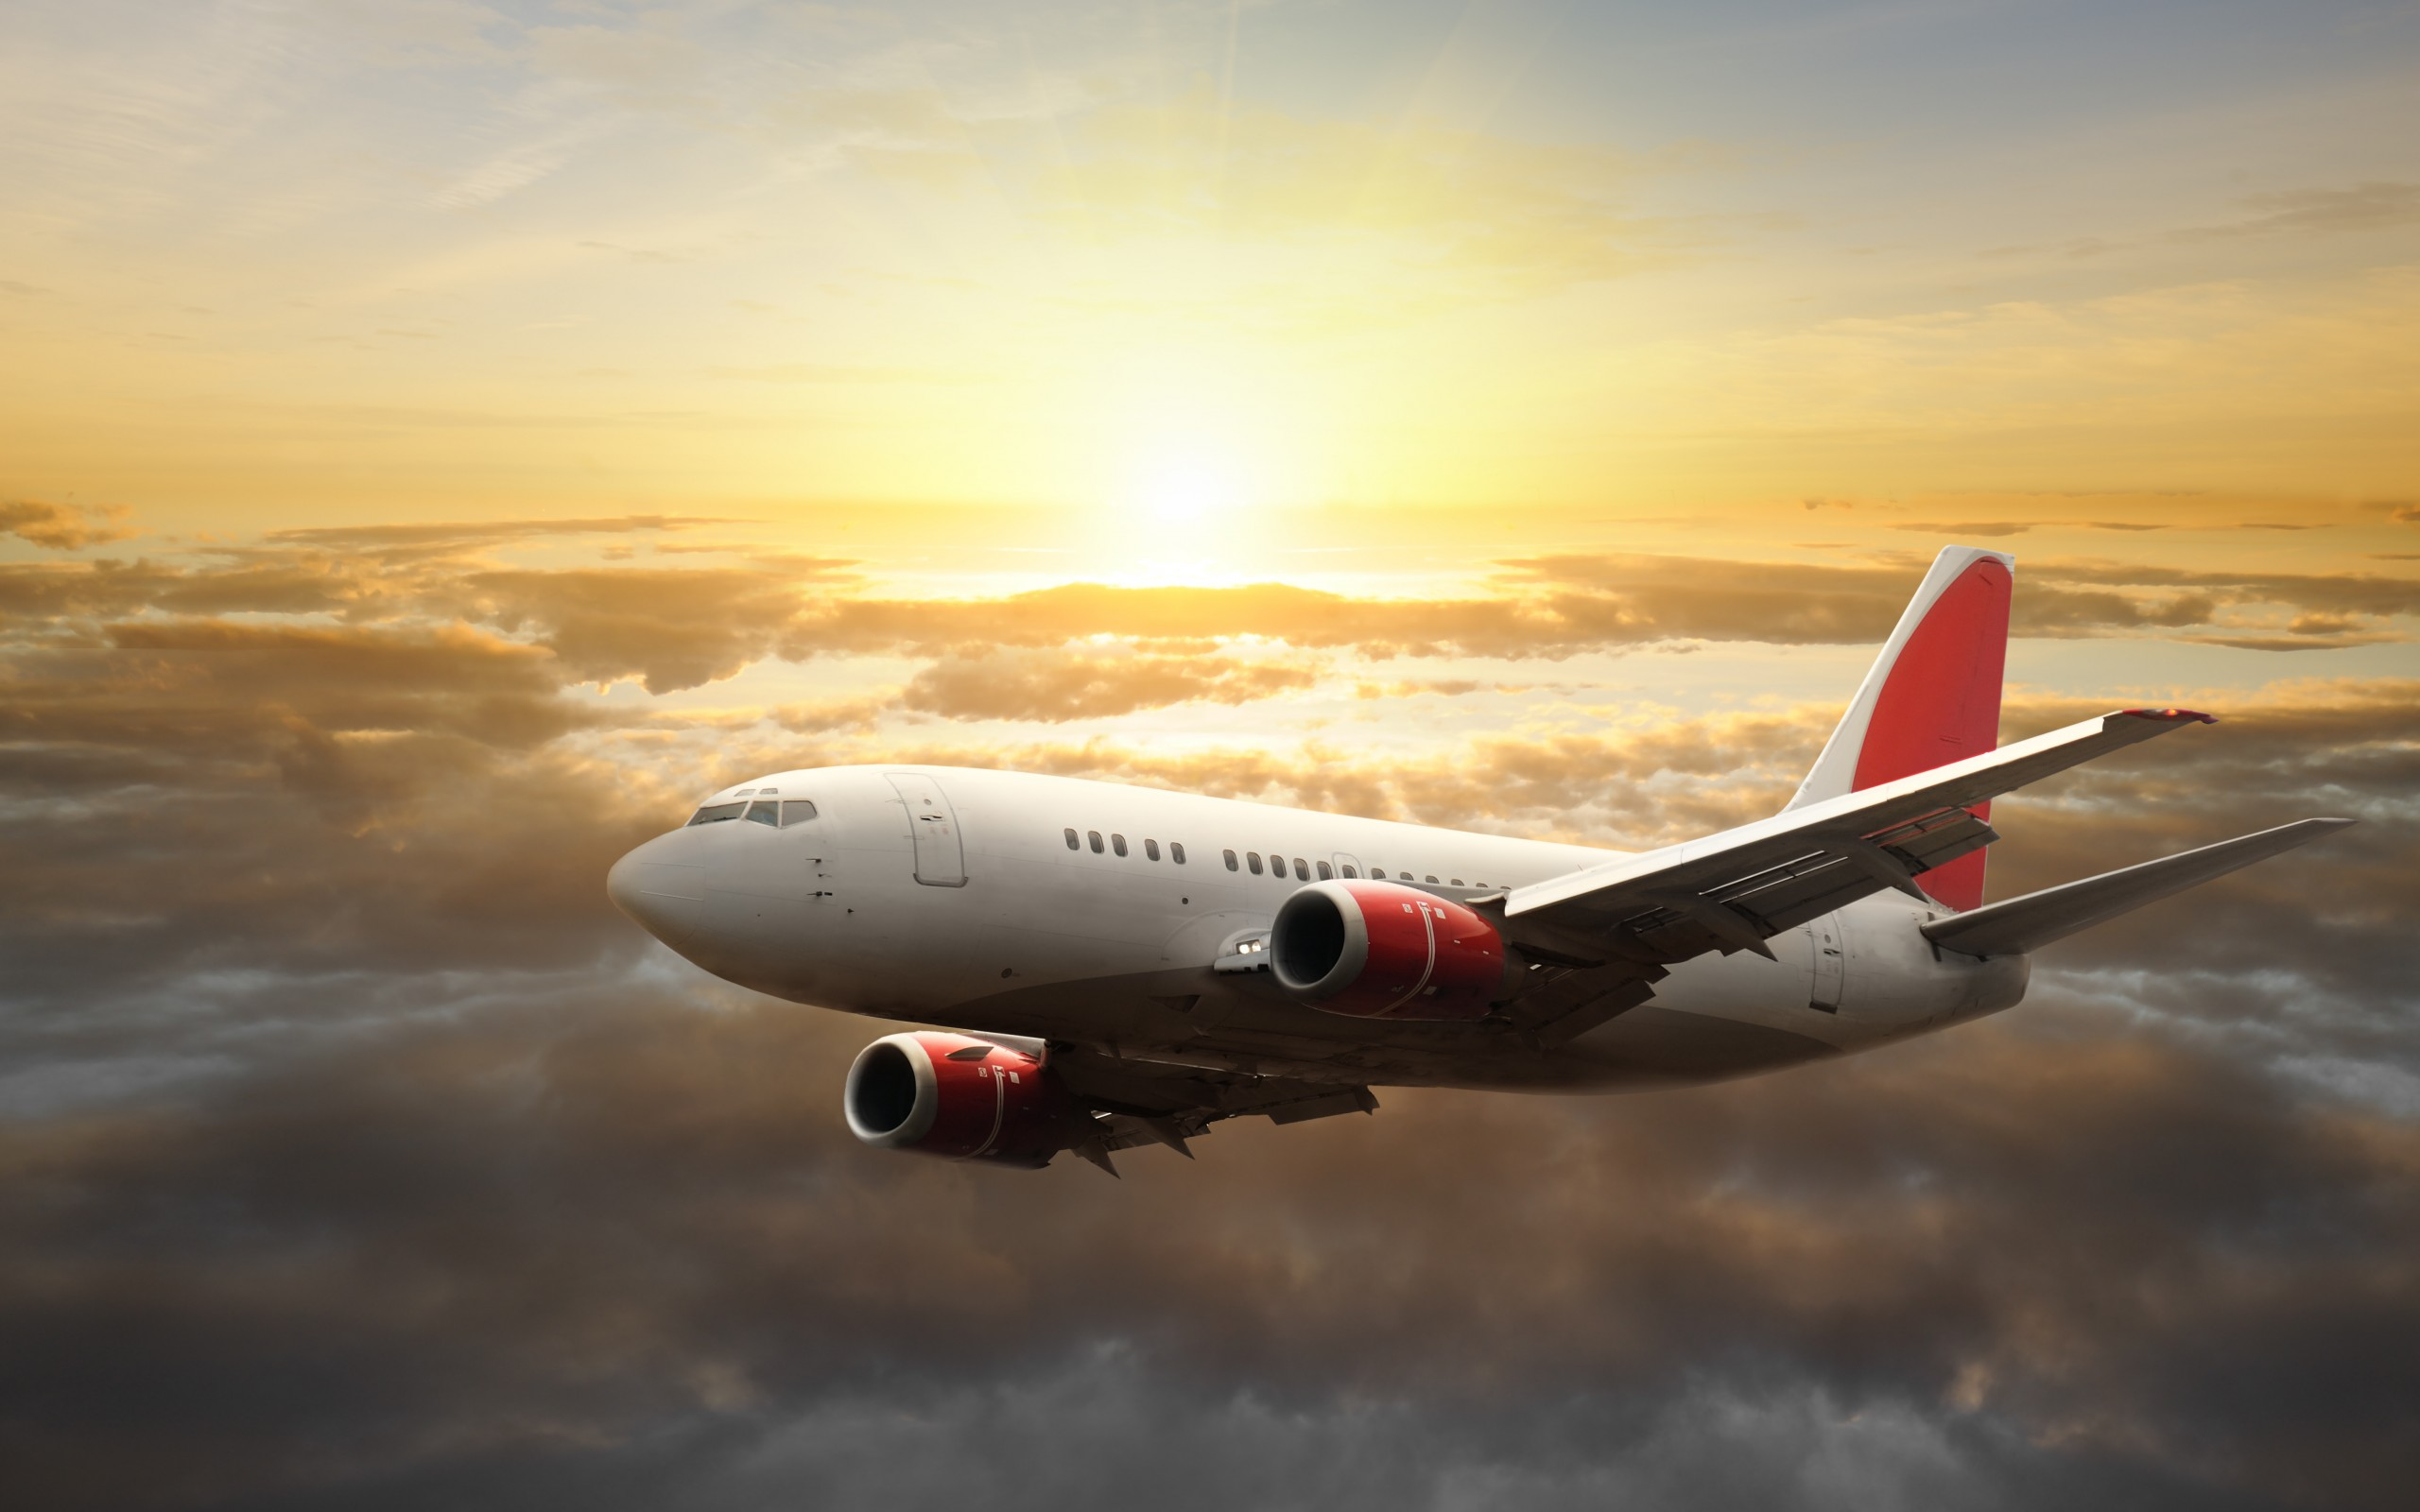 airplanes wallpapers photos and desktop backgrounds up to 8k